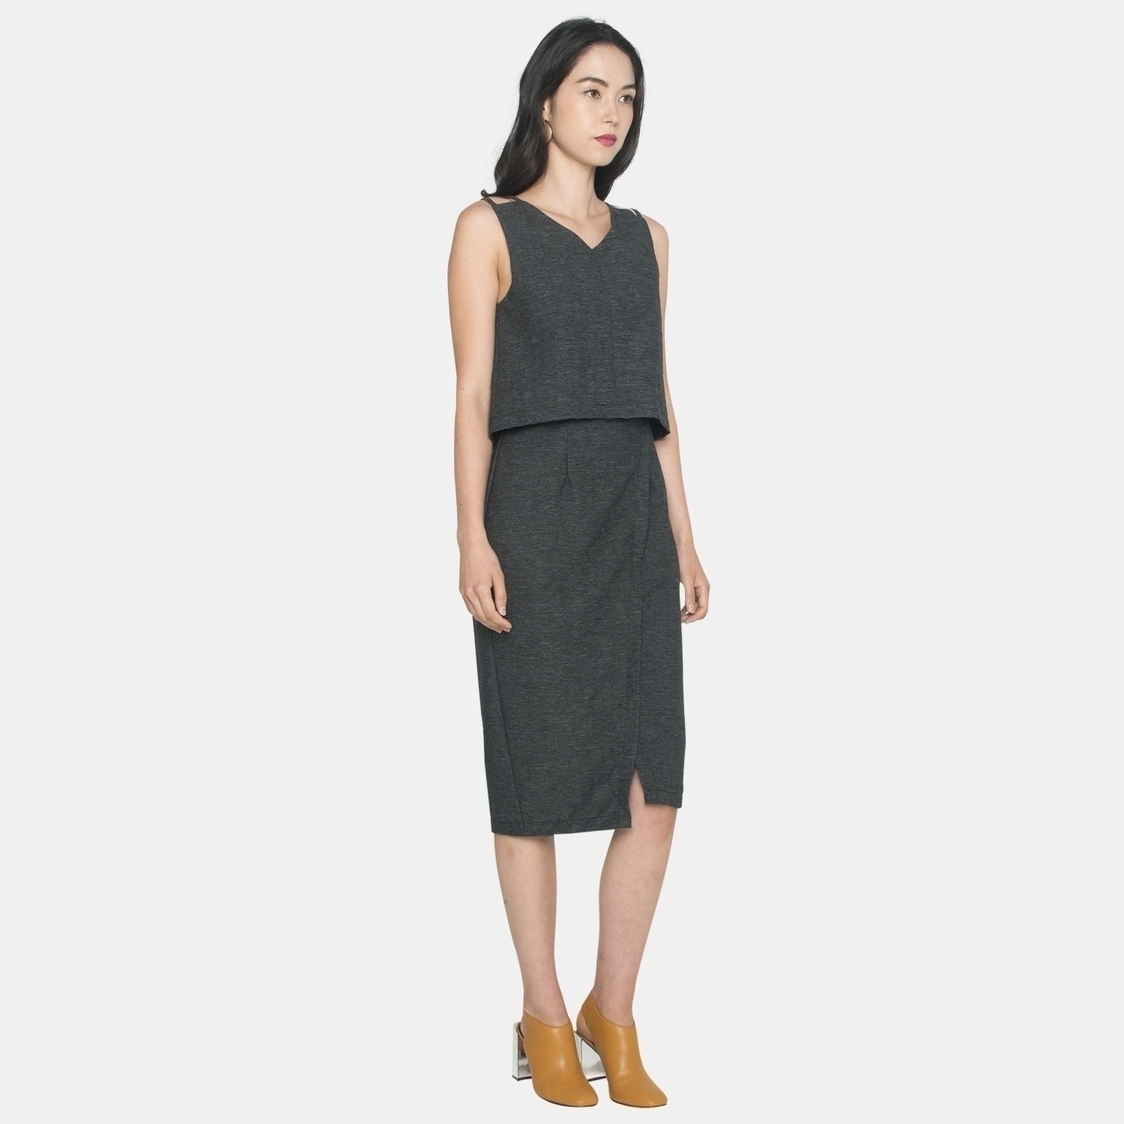 Ellysage Tiered Pencil Dress in Dark Grey